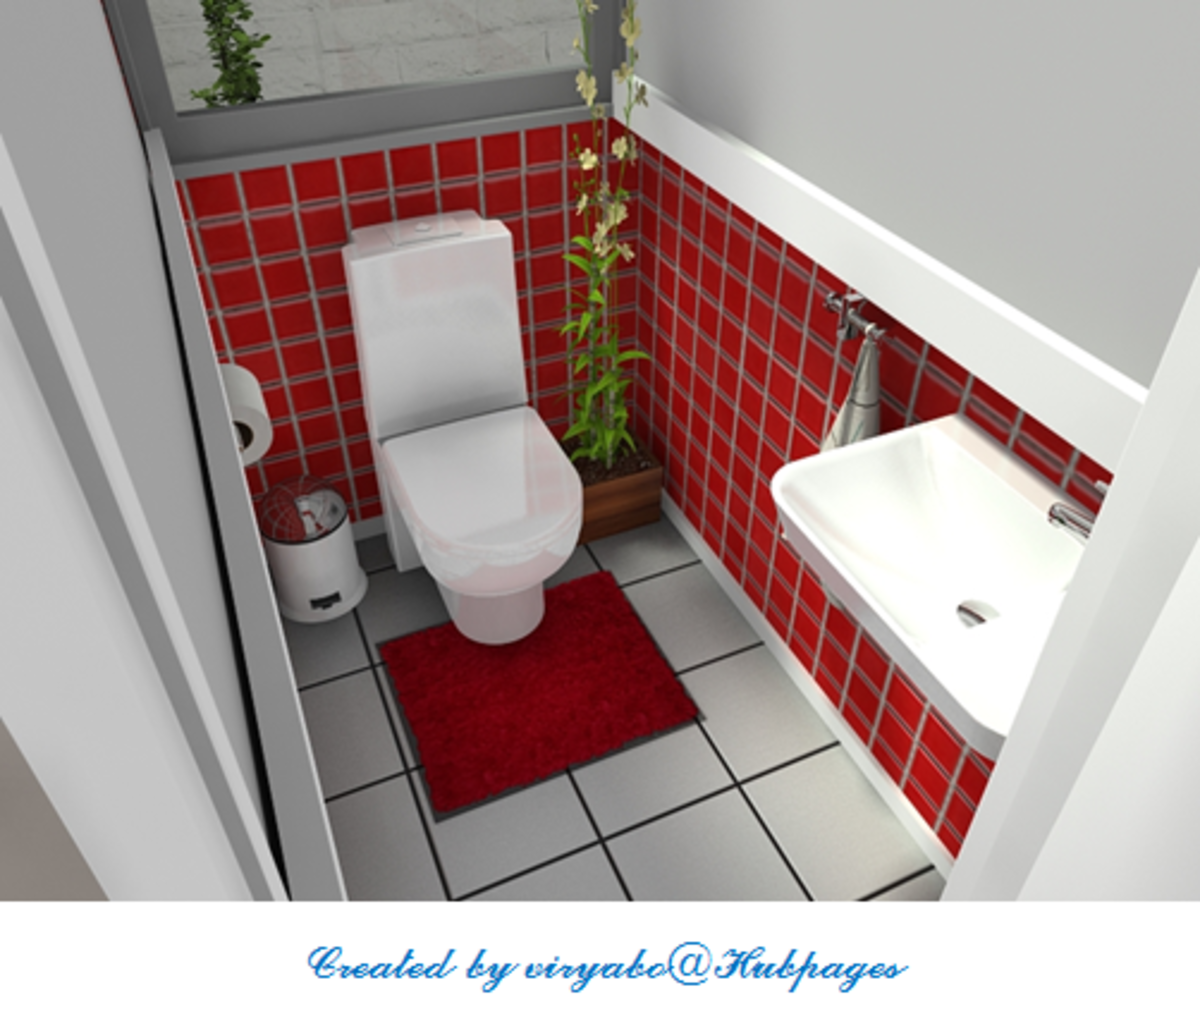 kitchen and bath design program best kitchen and bathroom design software hubpages 415